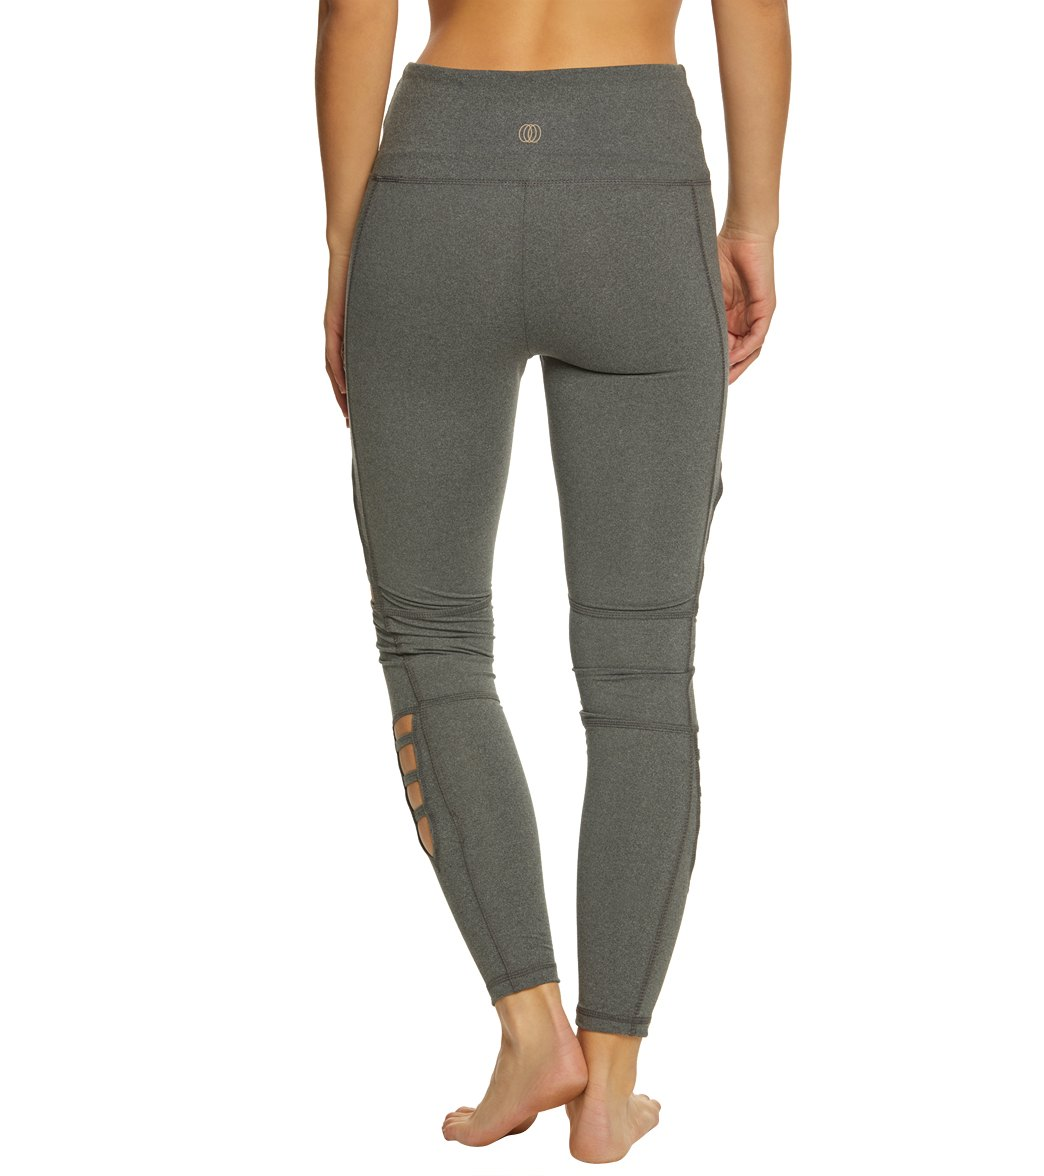 ff96240072 Balance Collection Molly Yoga Leggings at YogaOutlet.com - Free Shipping